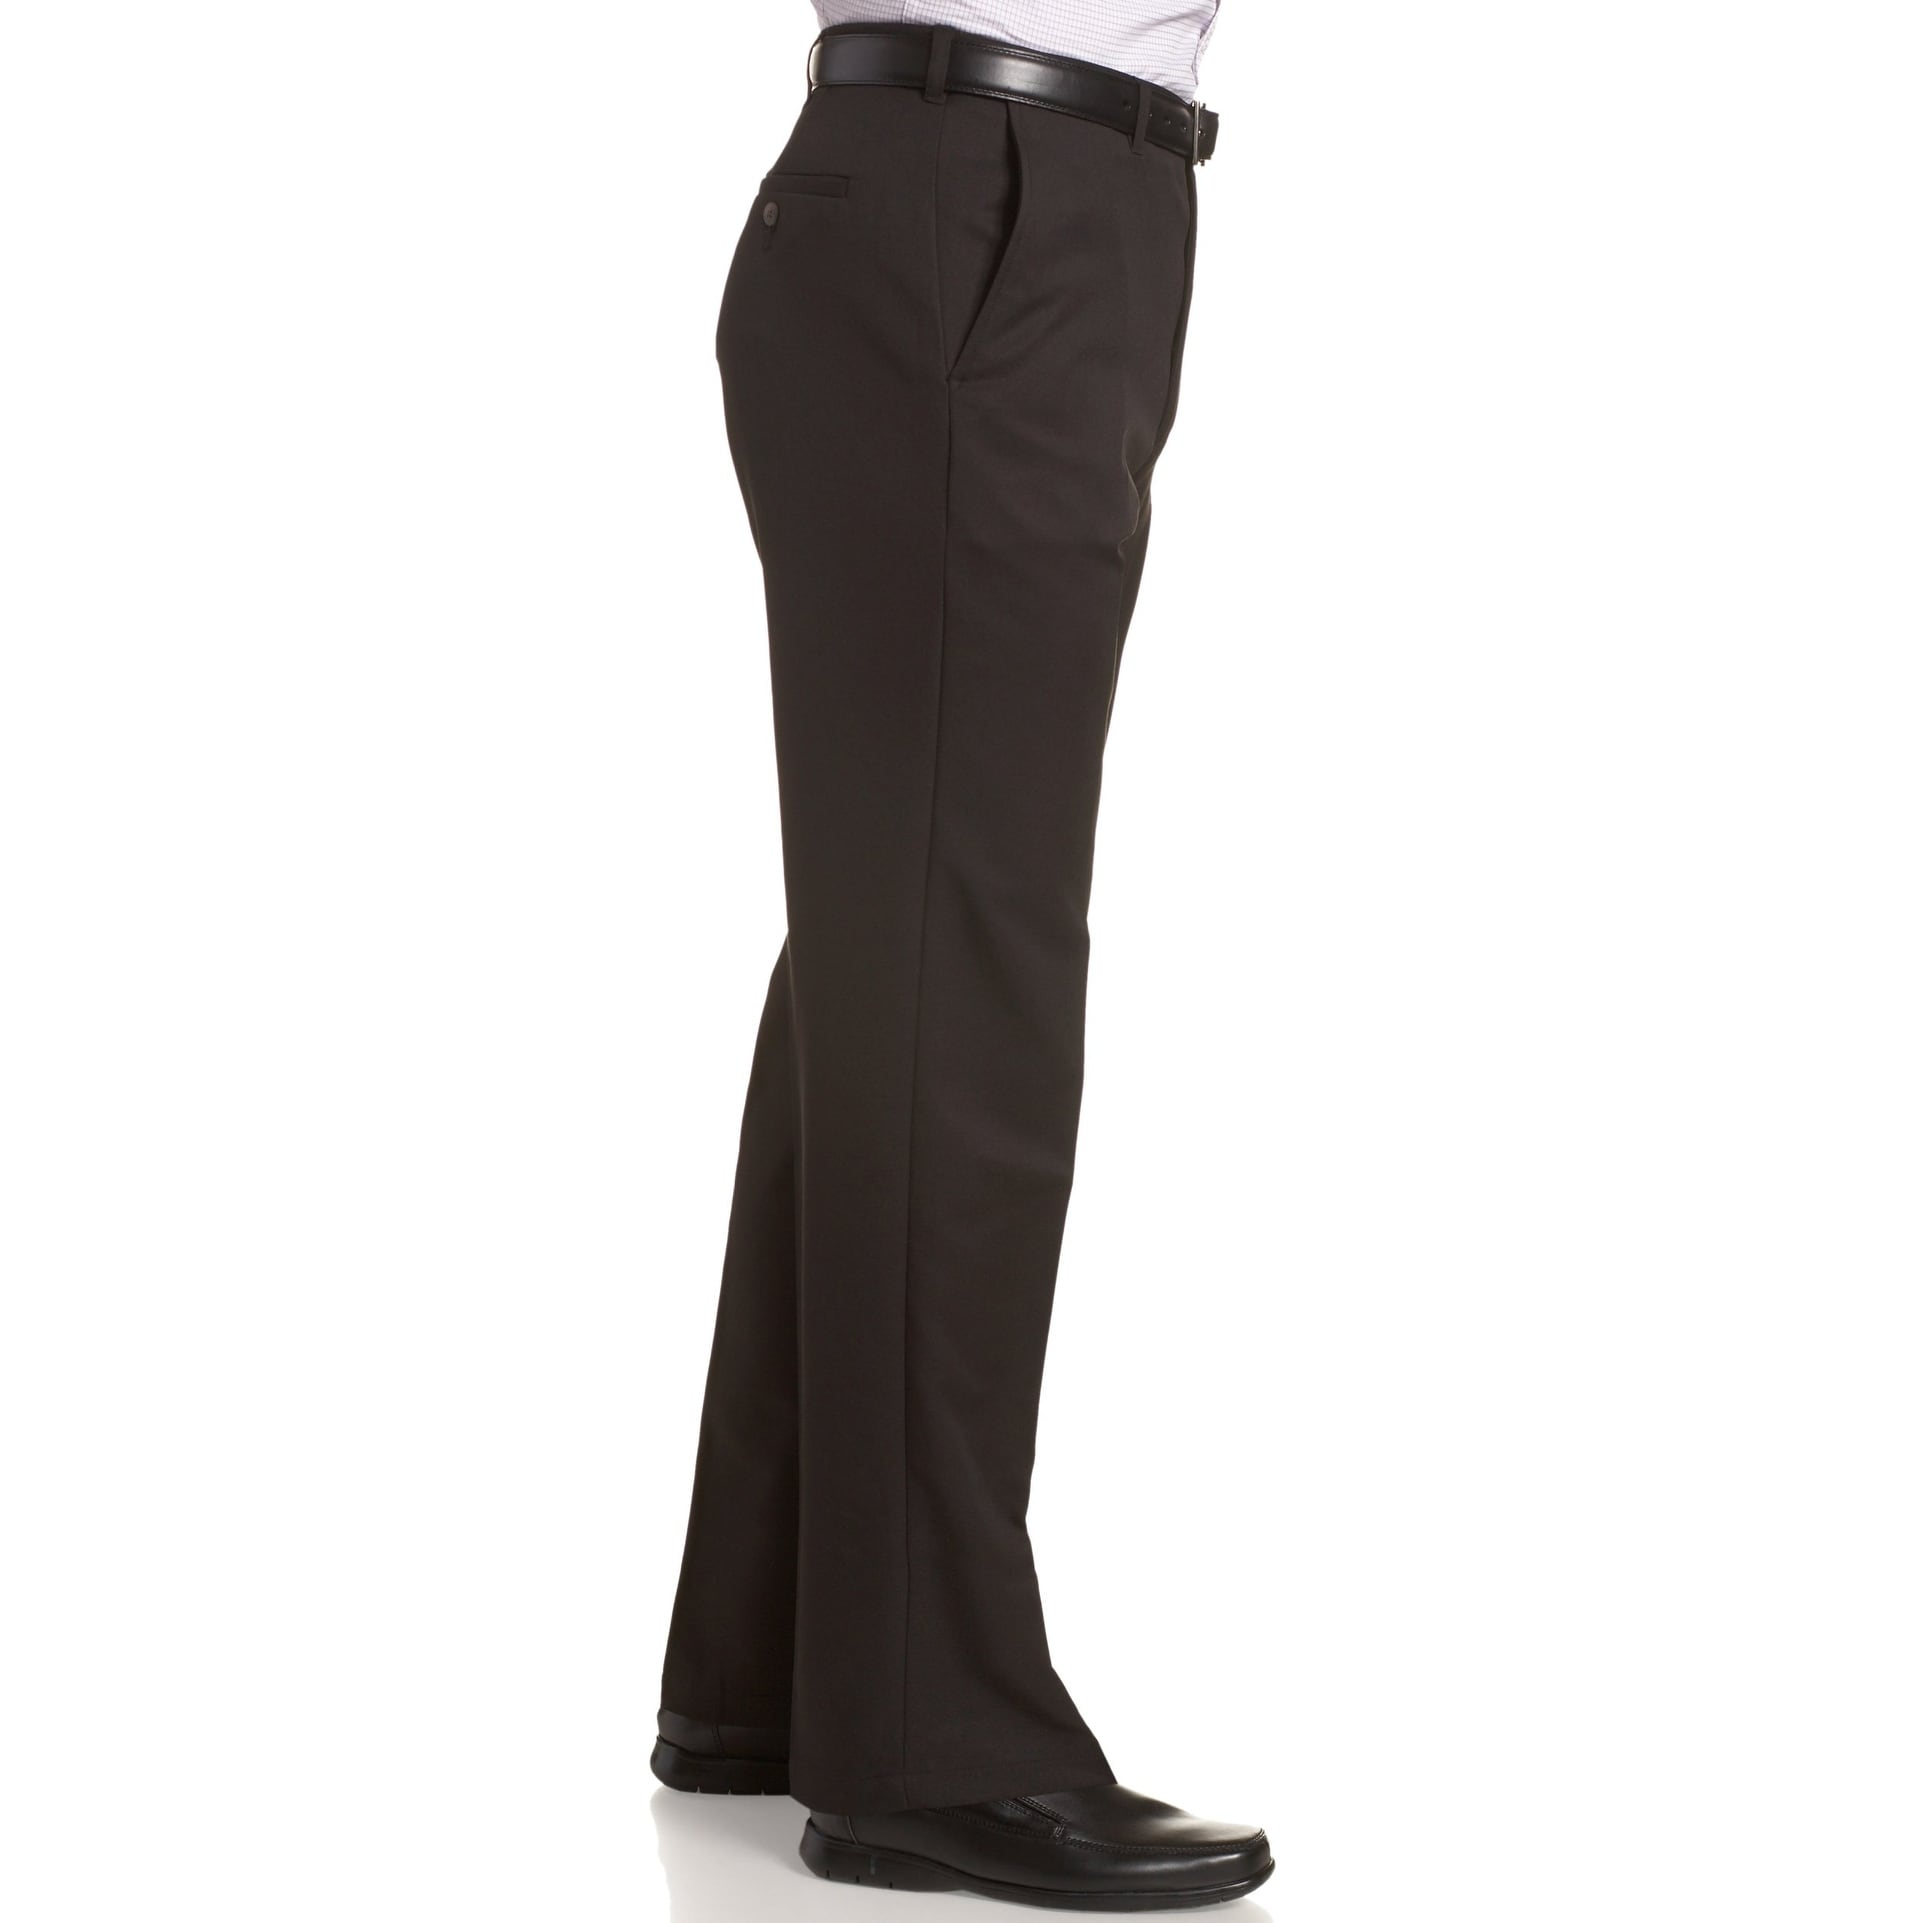 7f9336dd Shop Haggar Black Mens Size 34X30 Flat Front Solid Khaki Chino Pants - Free  Shipping On Orders Over $45 - Overstock - 27989516